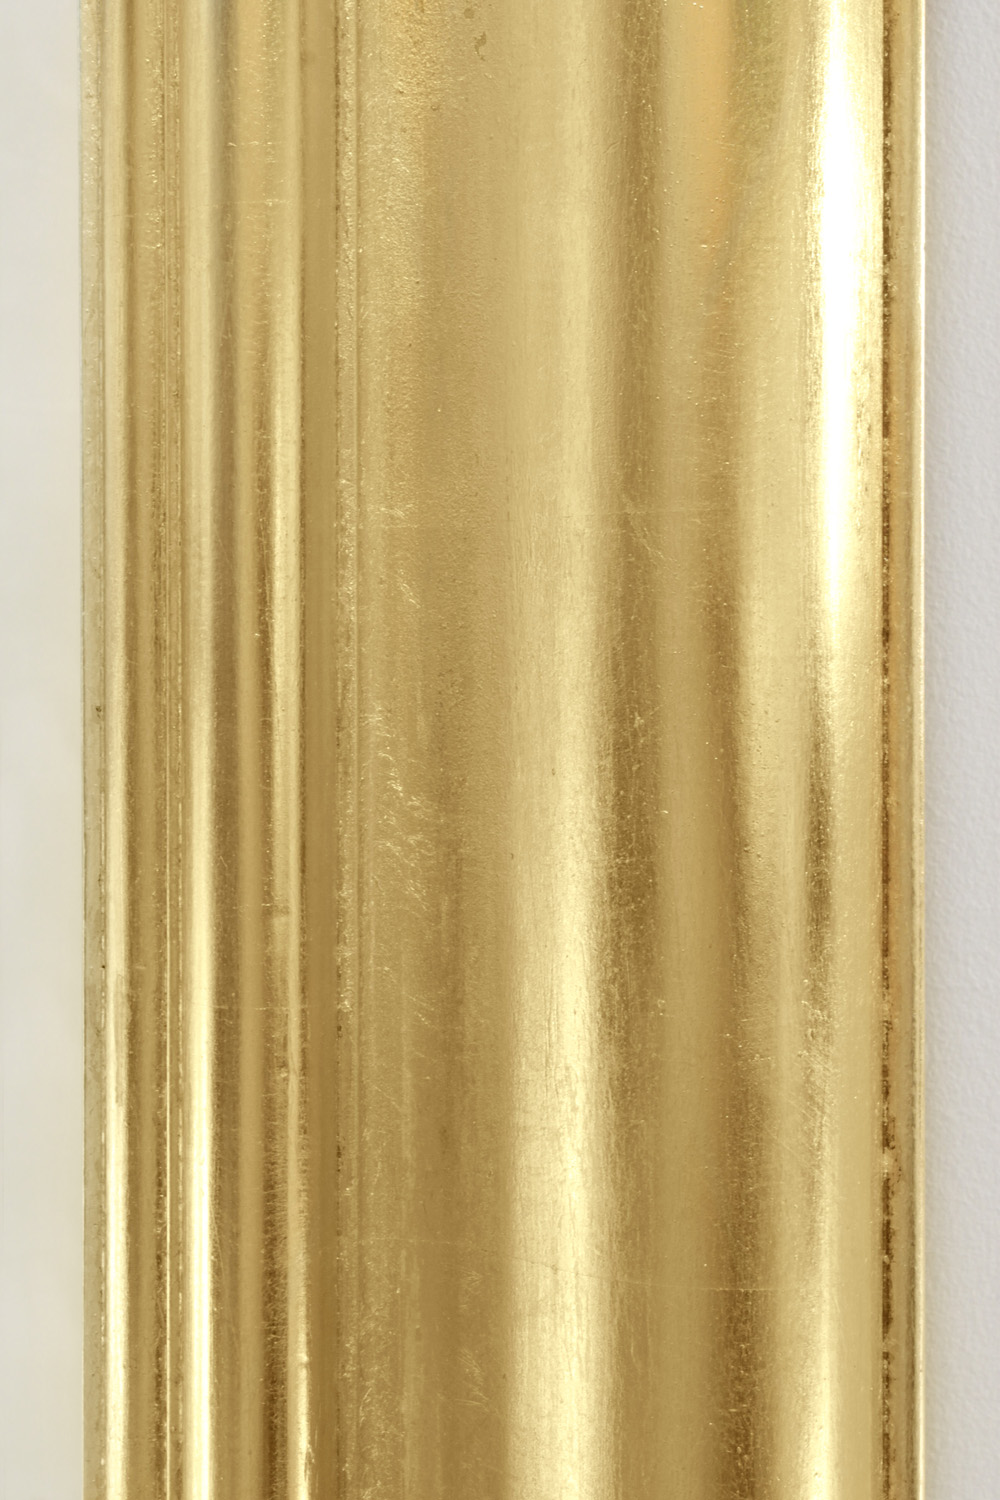 Springer 75 rect gold leaf mirror73 leaf detail hires.jpg